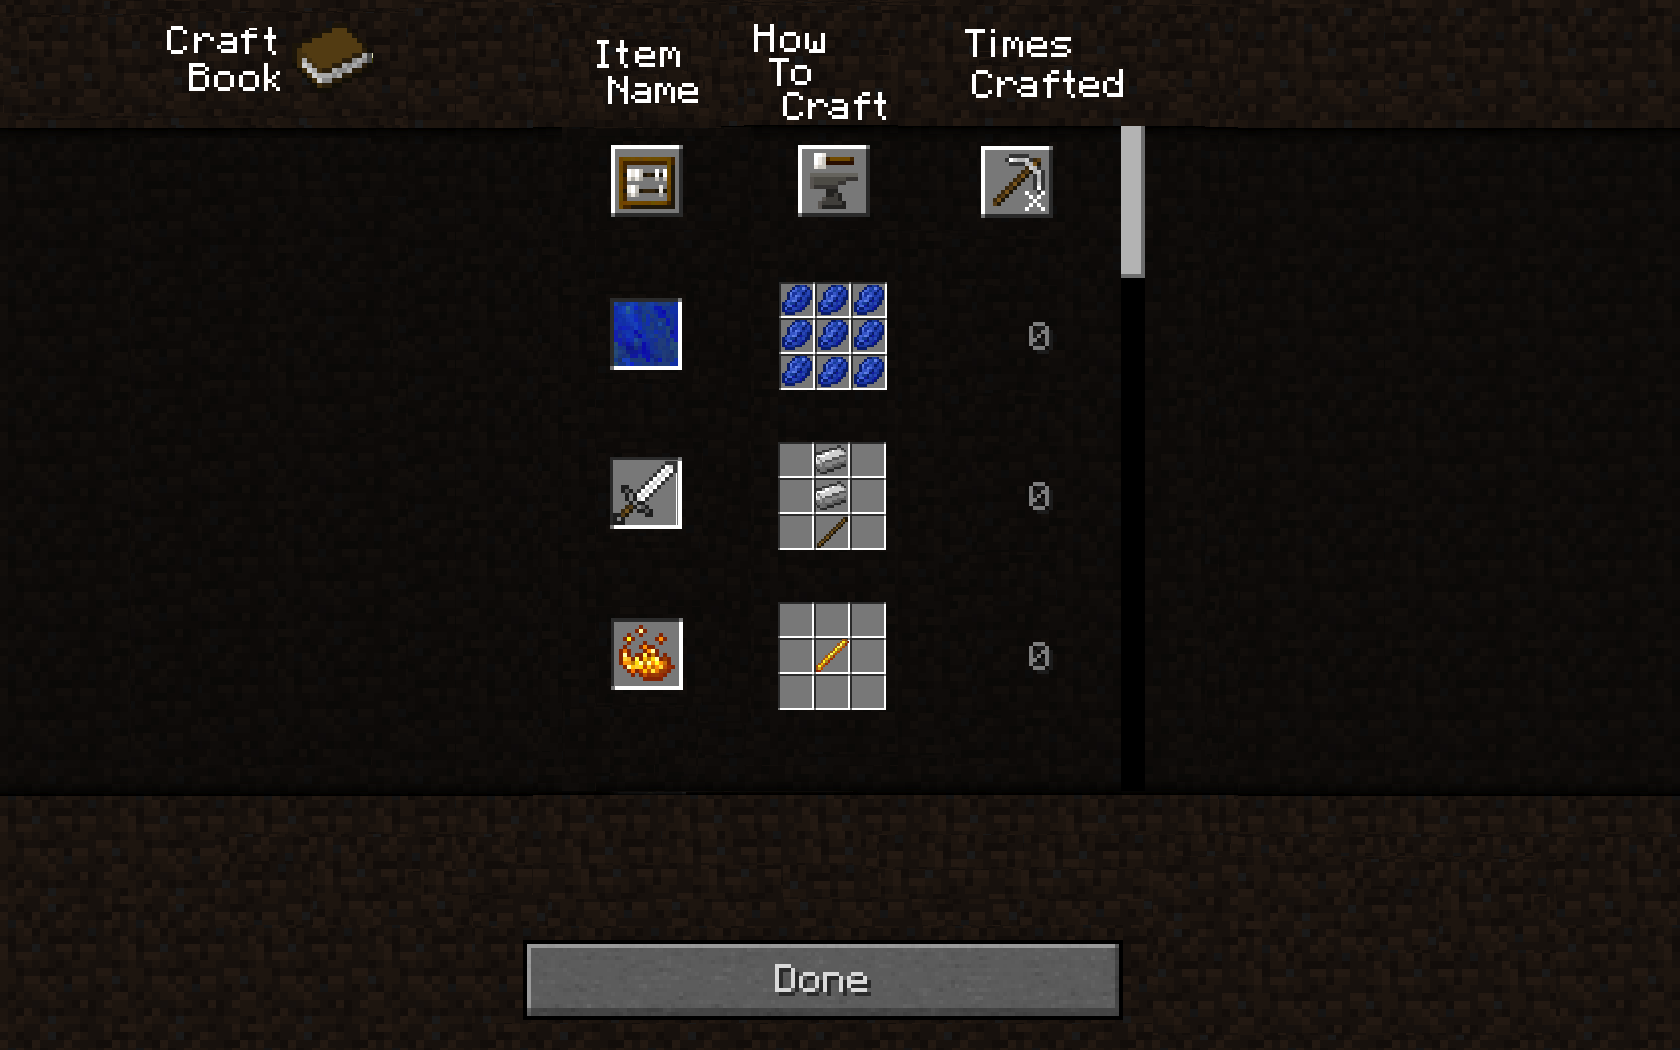 How To Make A Book In Minecraft : In game crafting recipe book legacy support archive